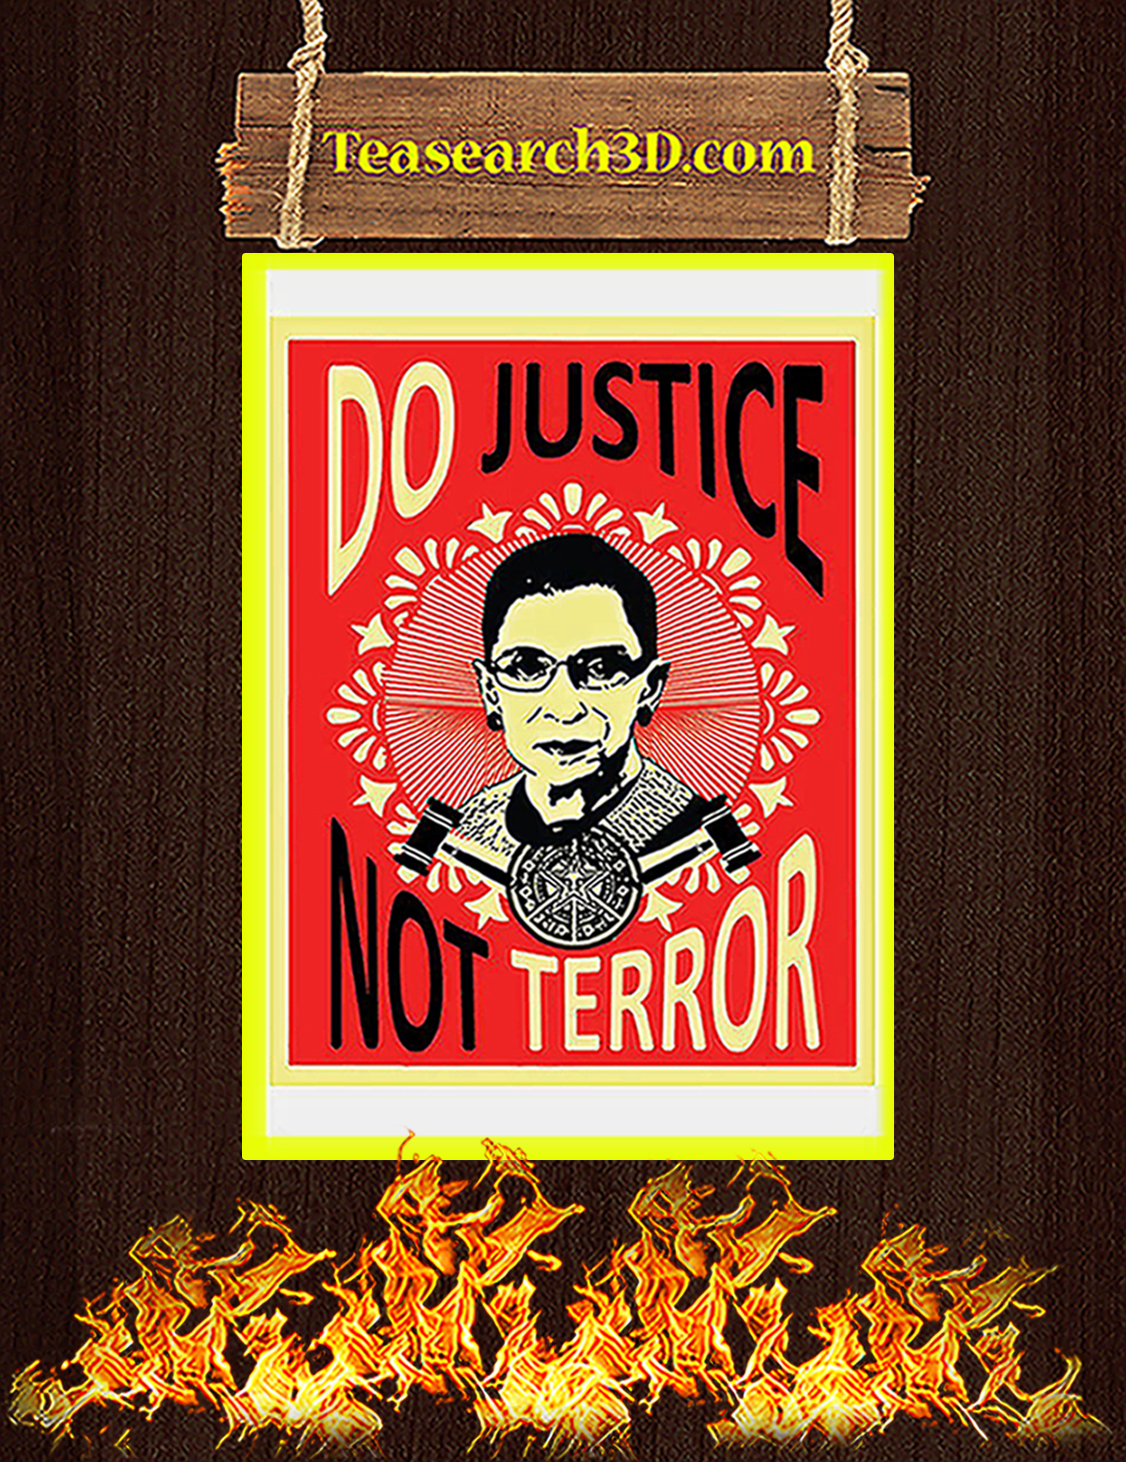 Do justice not terror Ruth bader ginsburg poster A3